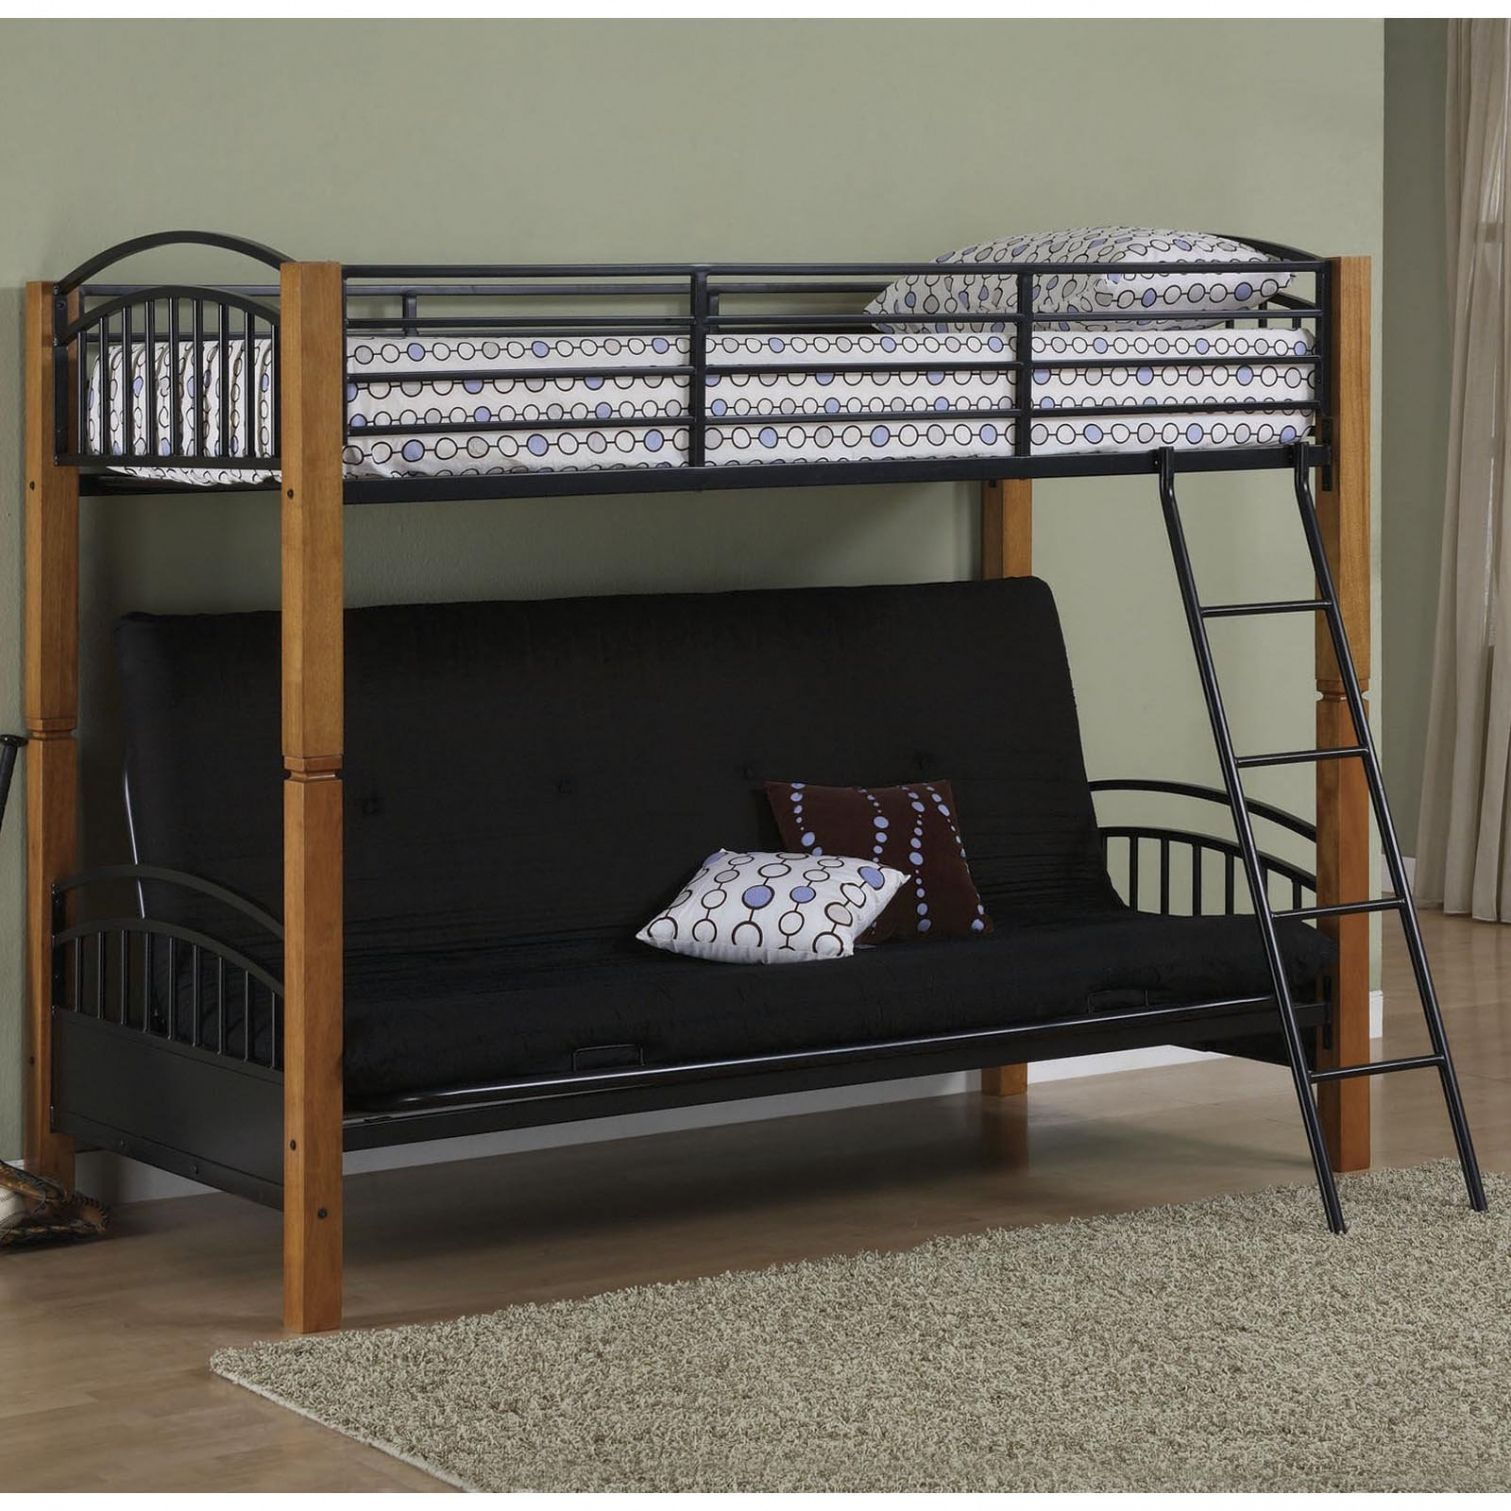 Bunk Beds with Futon Ikea Favorite Interior Paint Colors Check